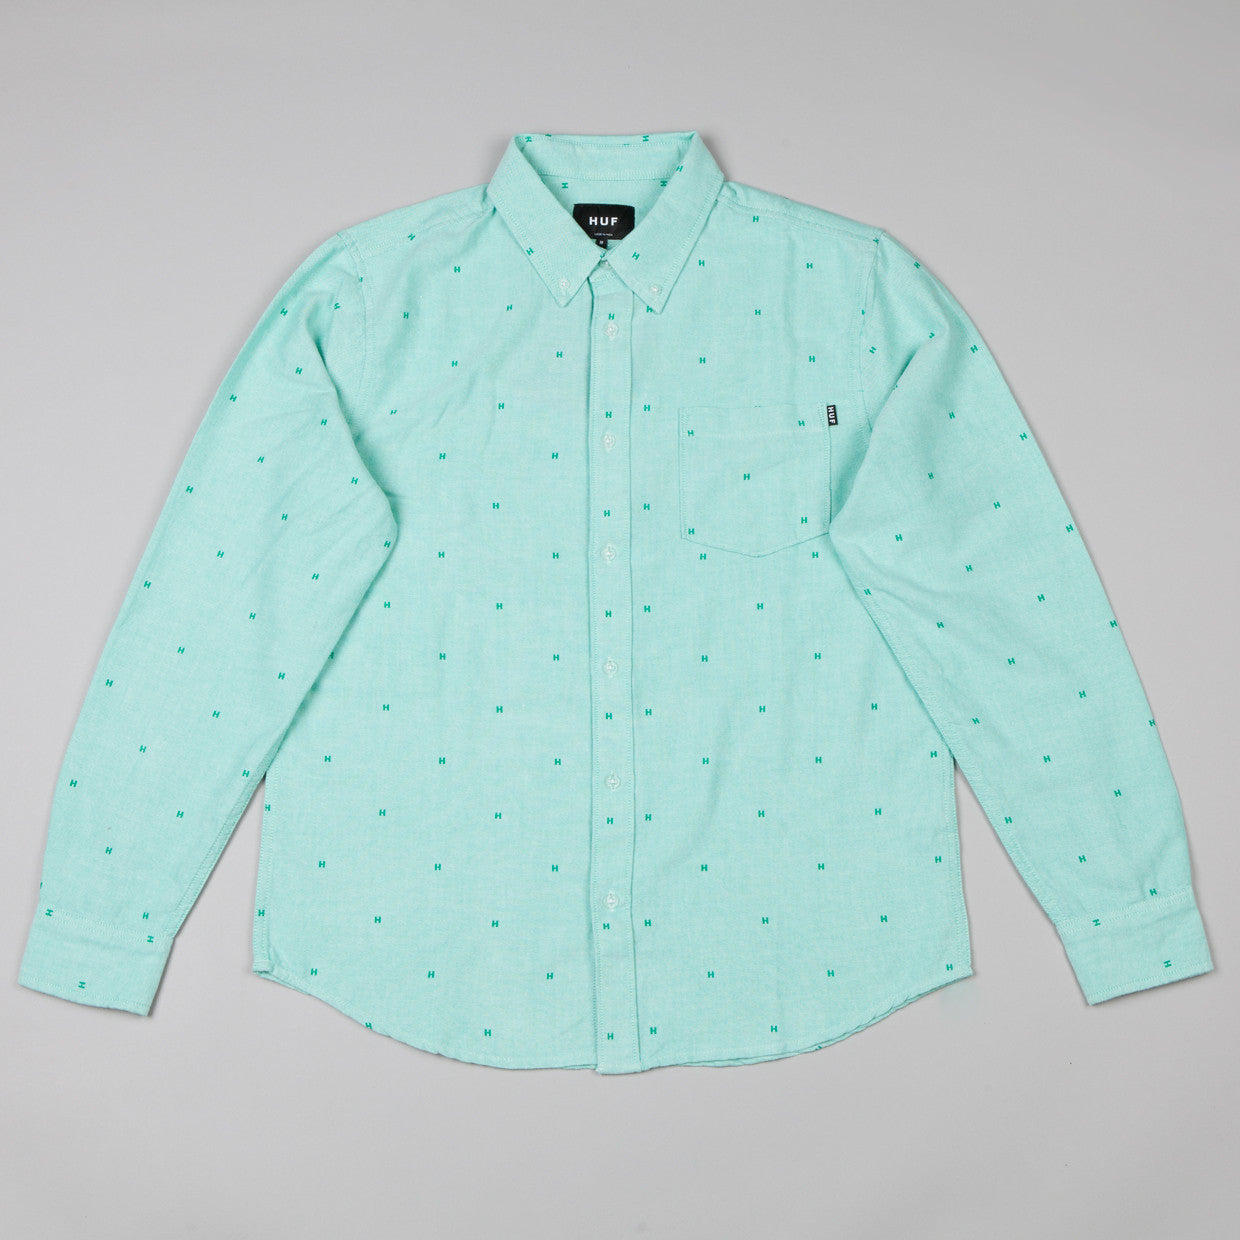 HUF Crested Oxford Shirt Mint